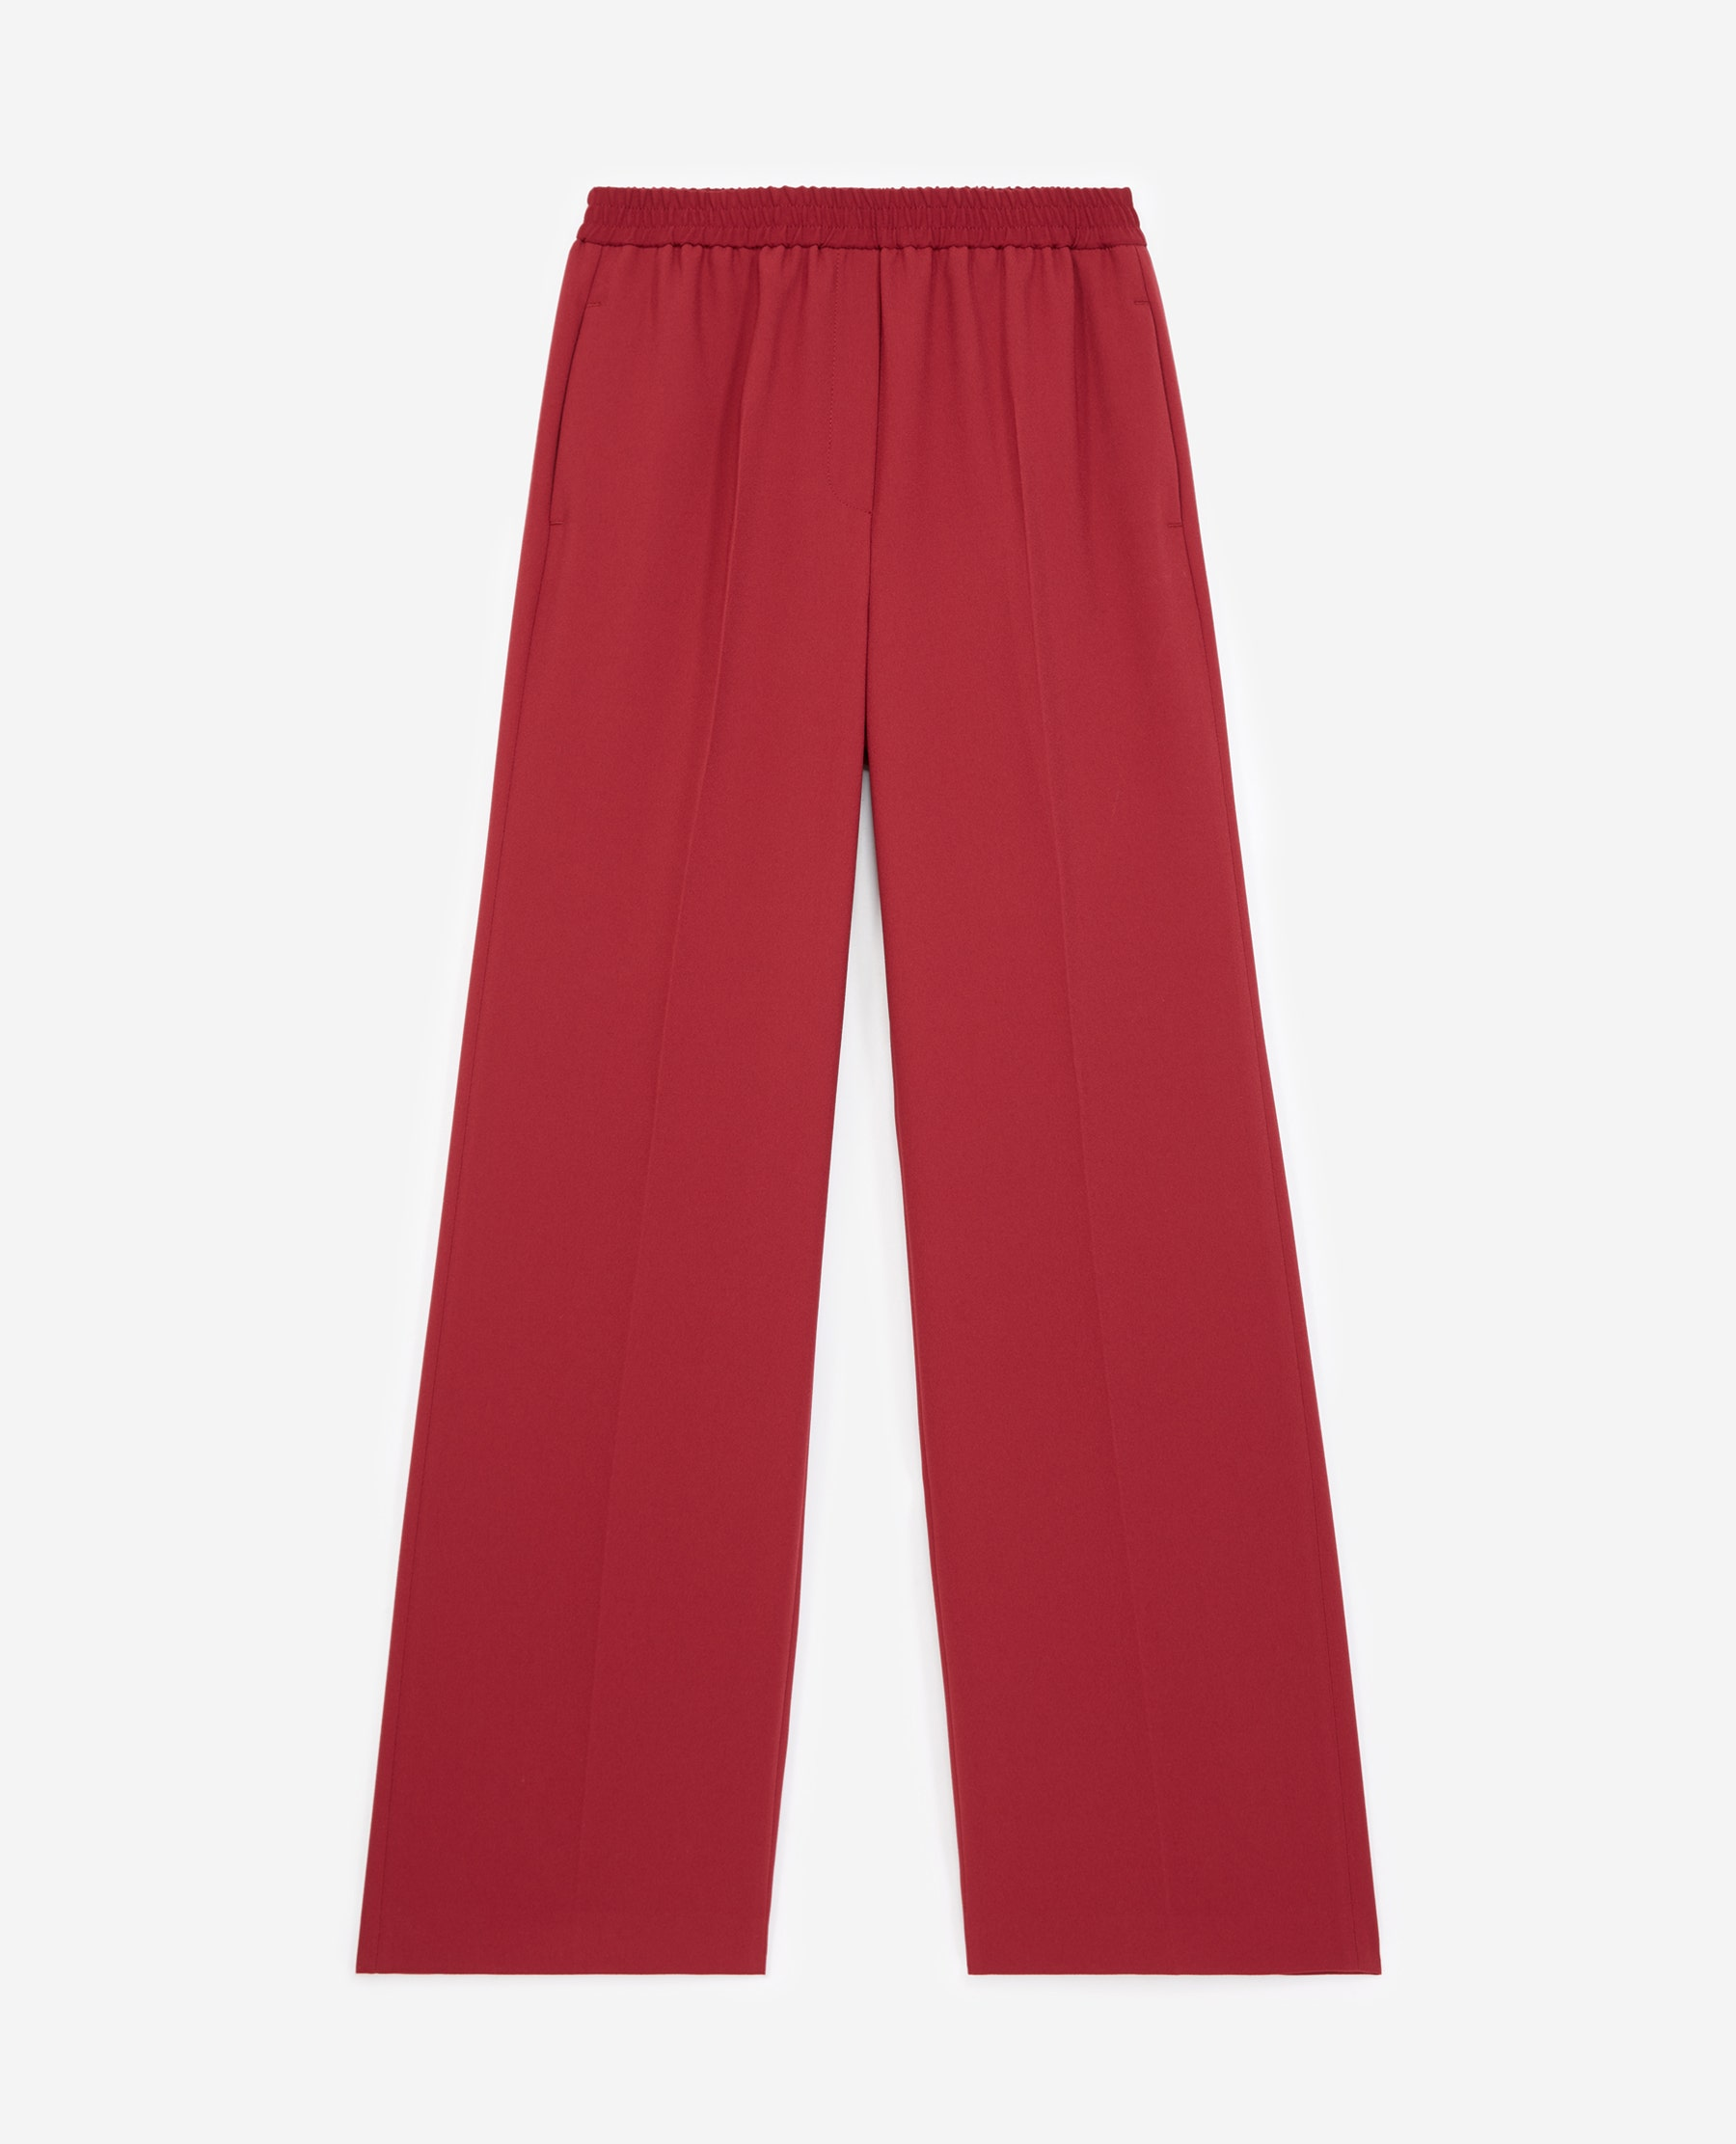 Pantalon costume bordeaux tissu fluide - The Kooples - Modalova